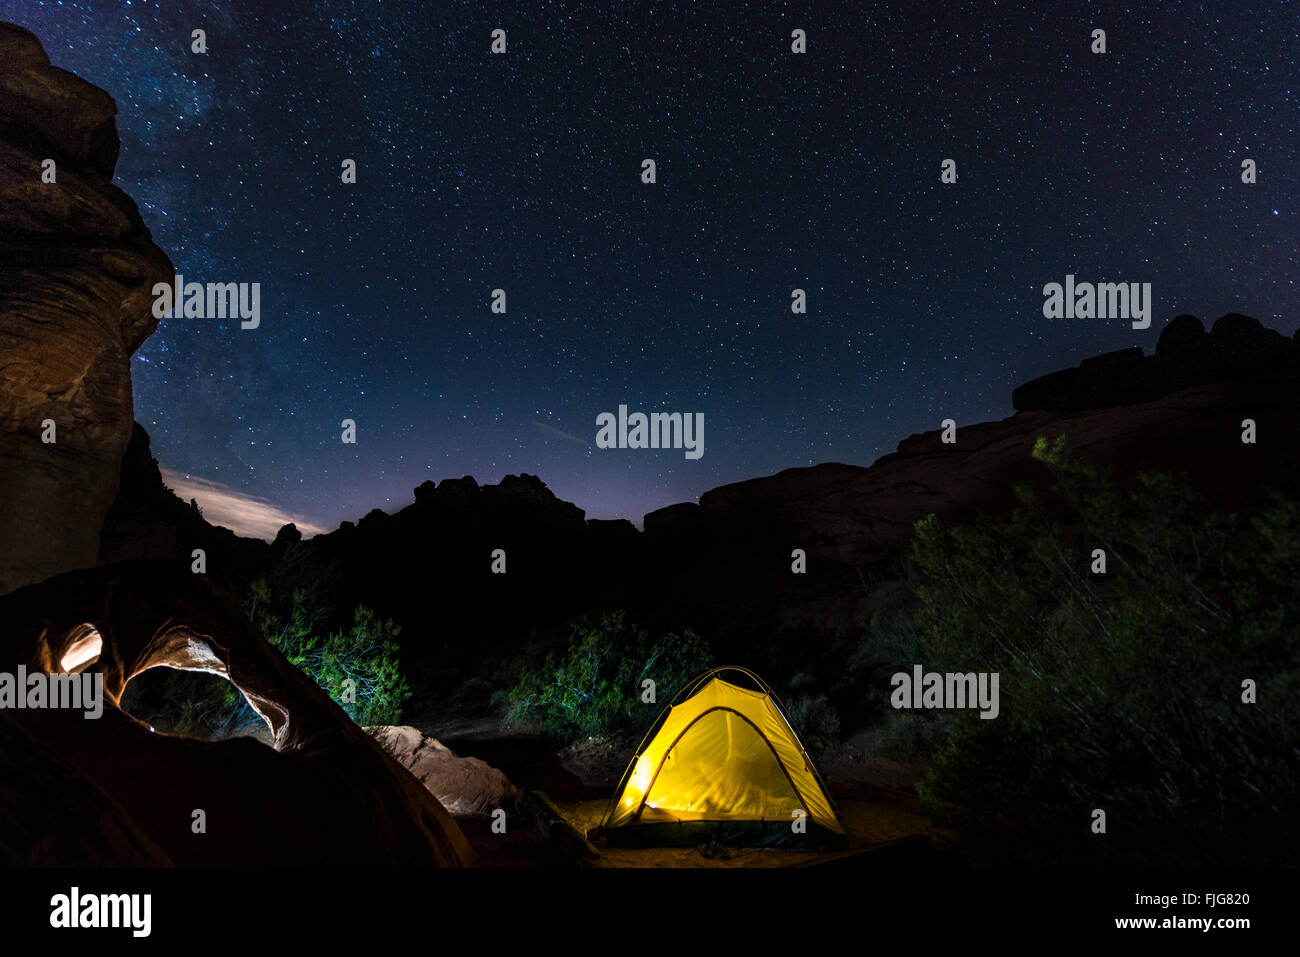 Tent on a campsite with starry sky above, night scene, Wildrose Campground, Death Valley National Park, California, - Stock Image